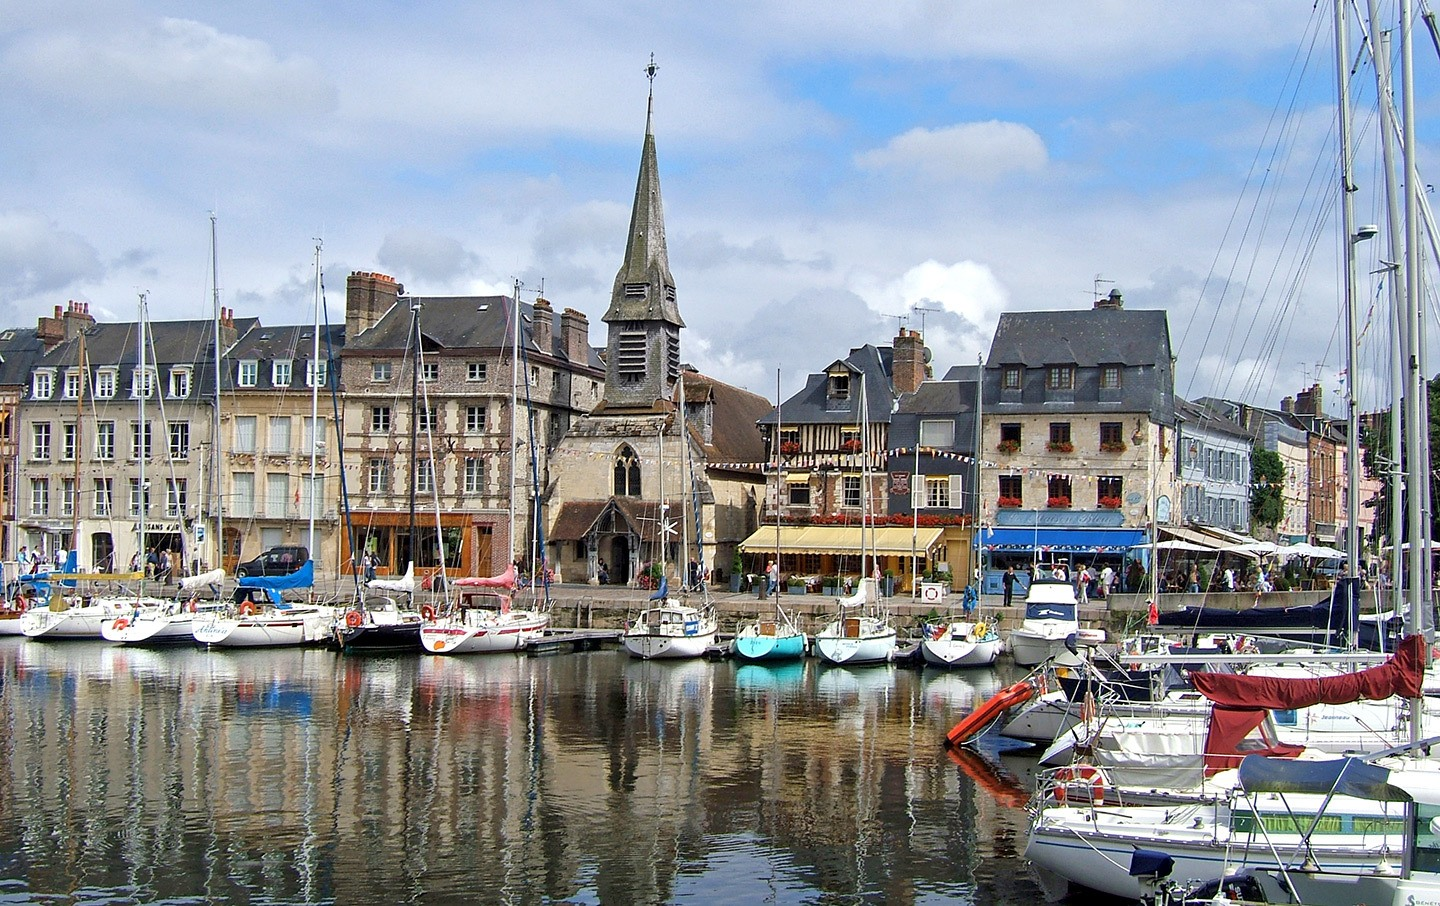 Honfleur in Normandy, France